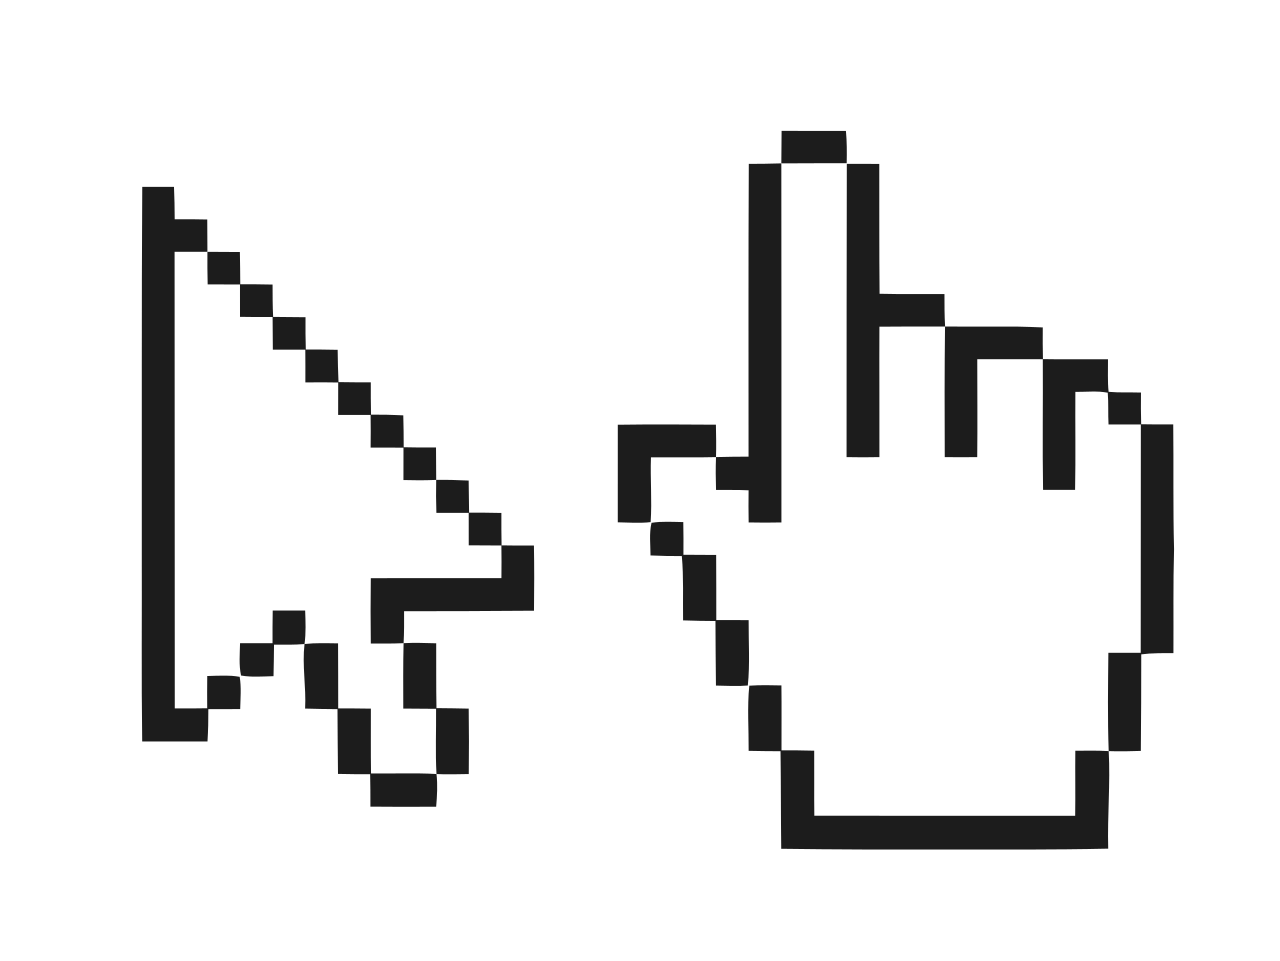 File:Mouse-cursor-hand-pointer.svg